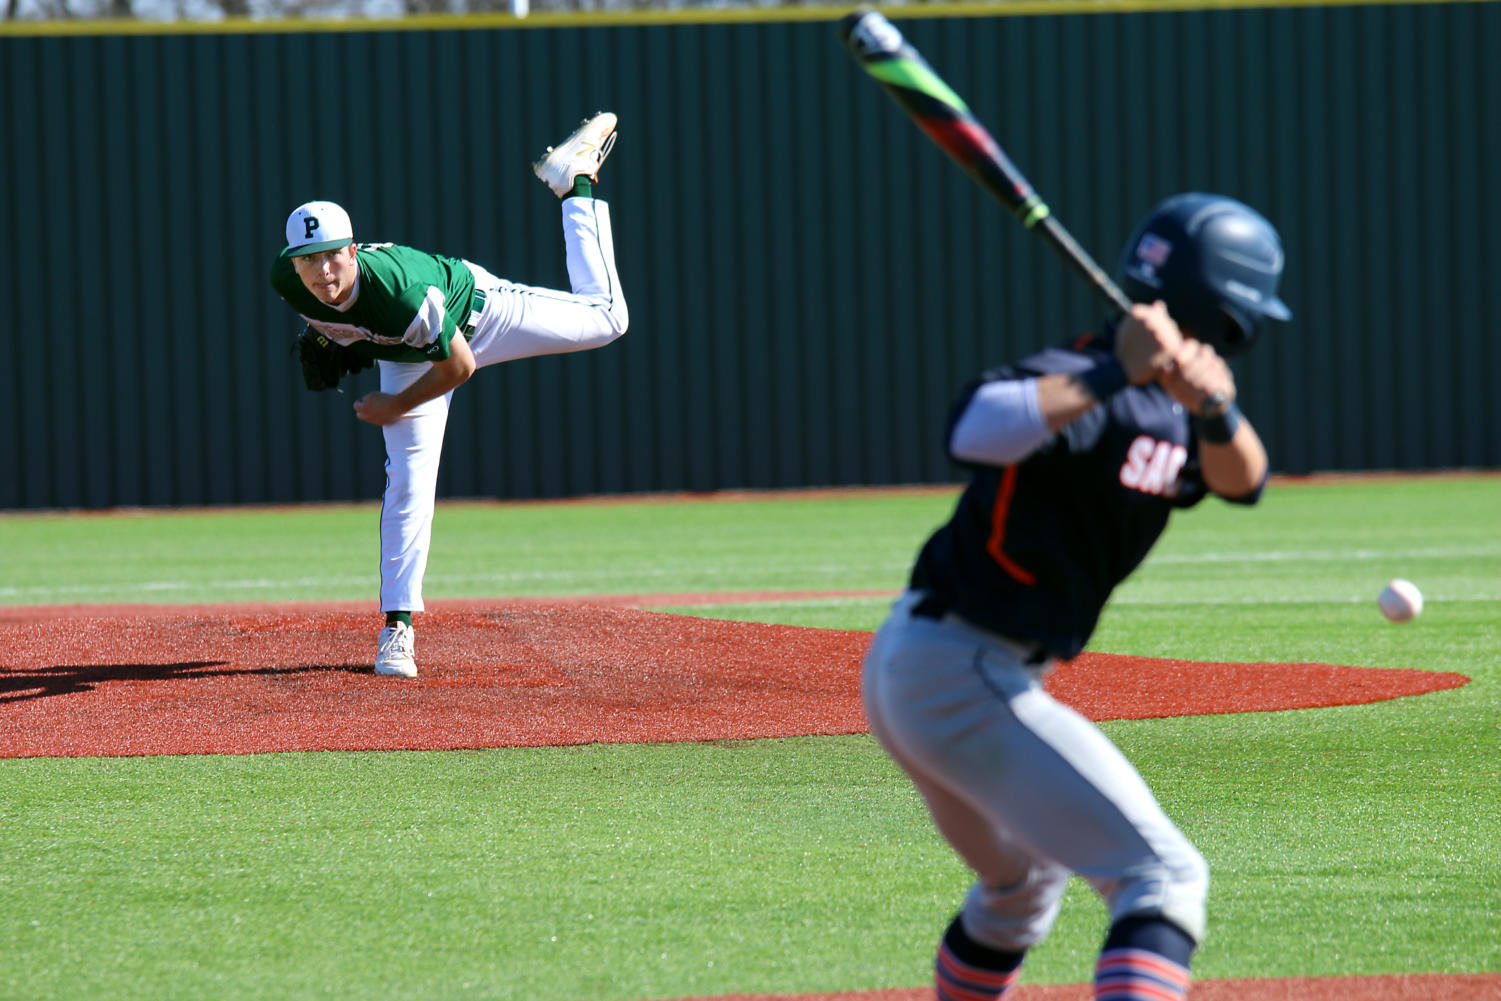 Senior Picher Conner Jackson throws a pitch during a game against Sachse in a preseason tournament.